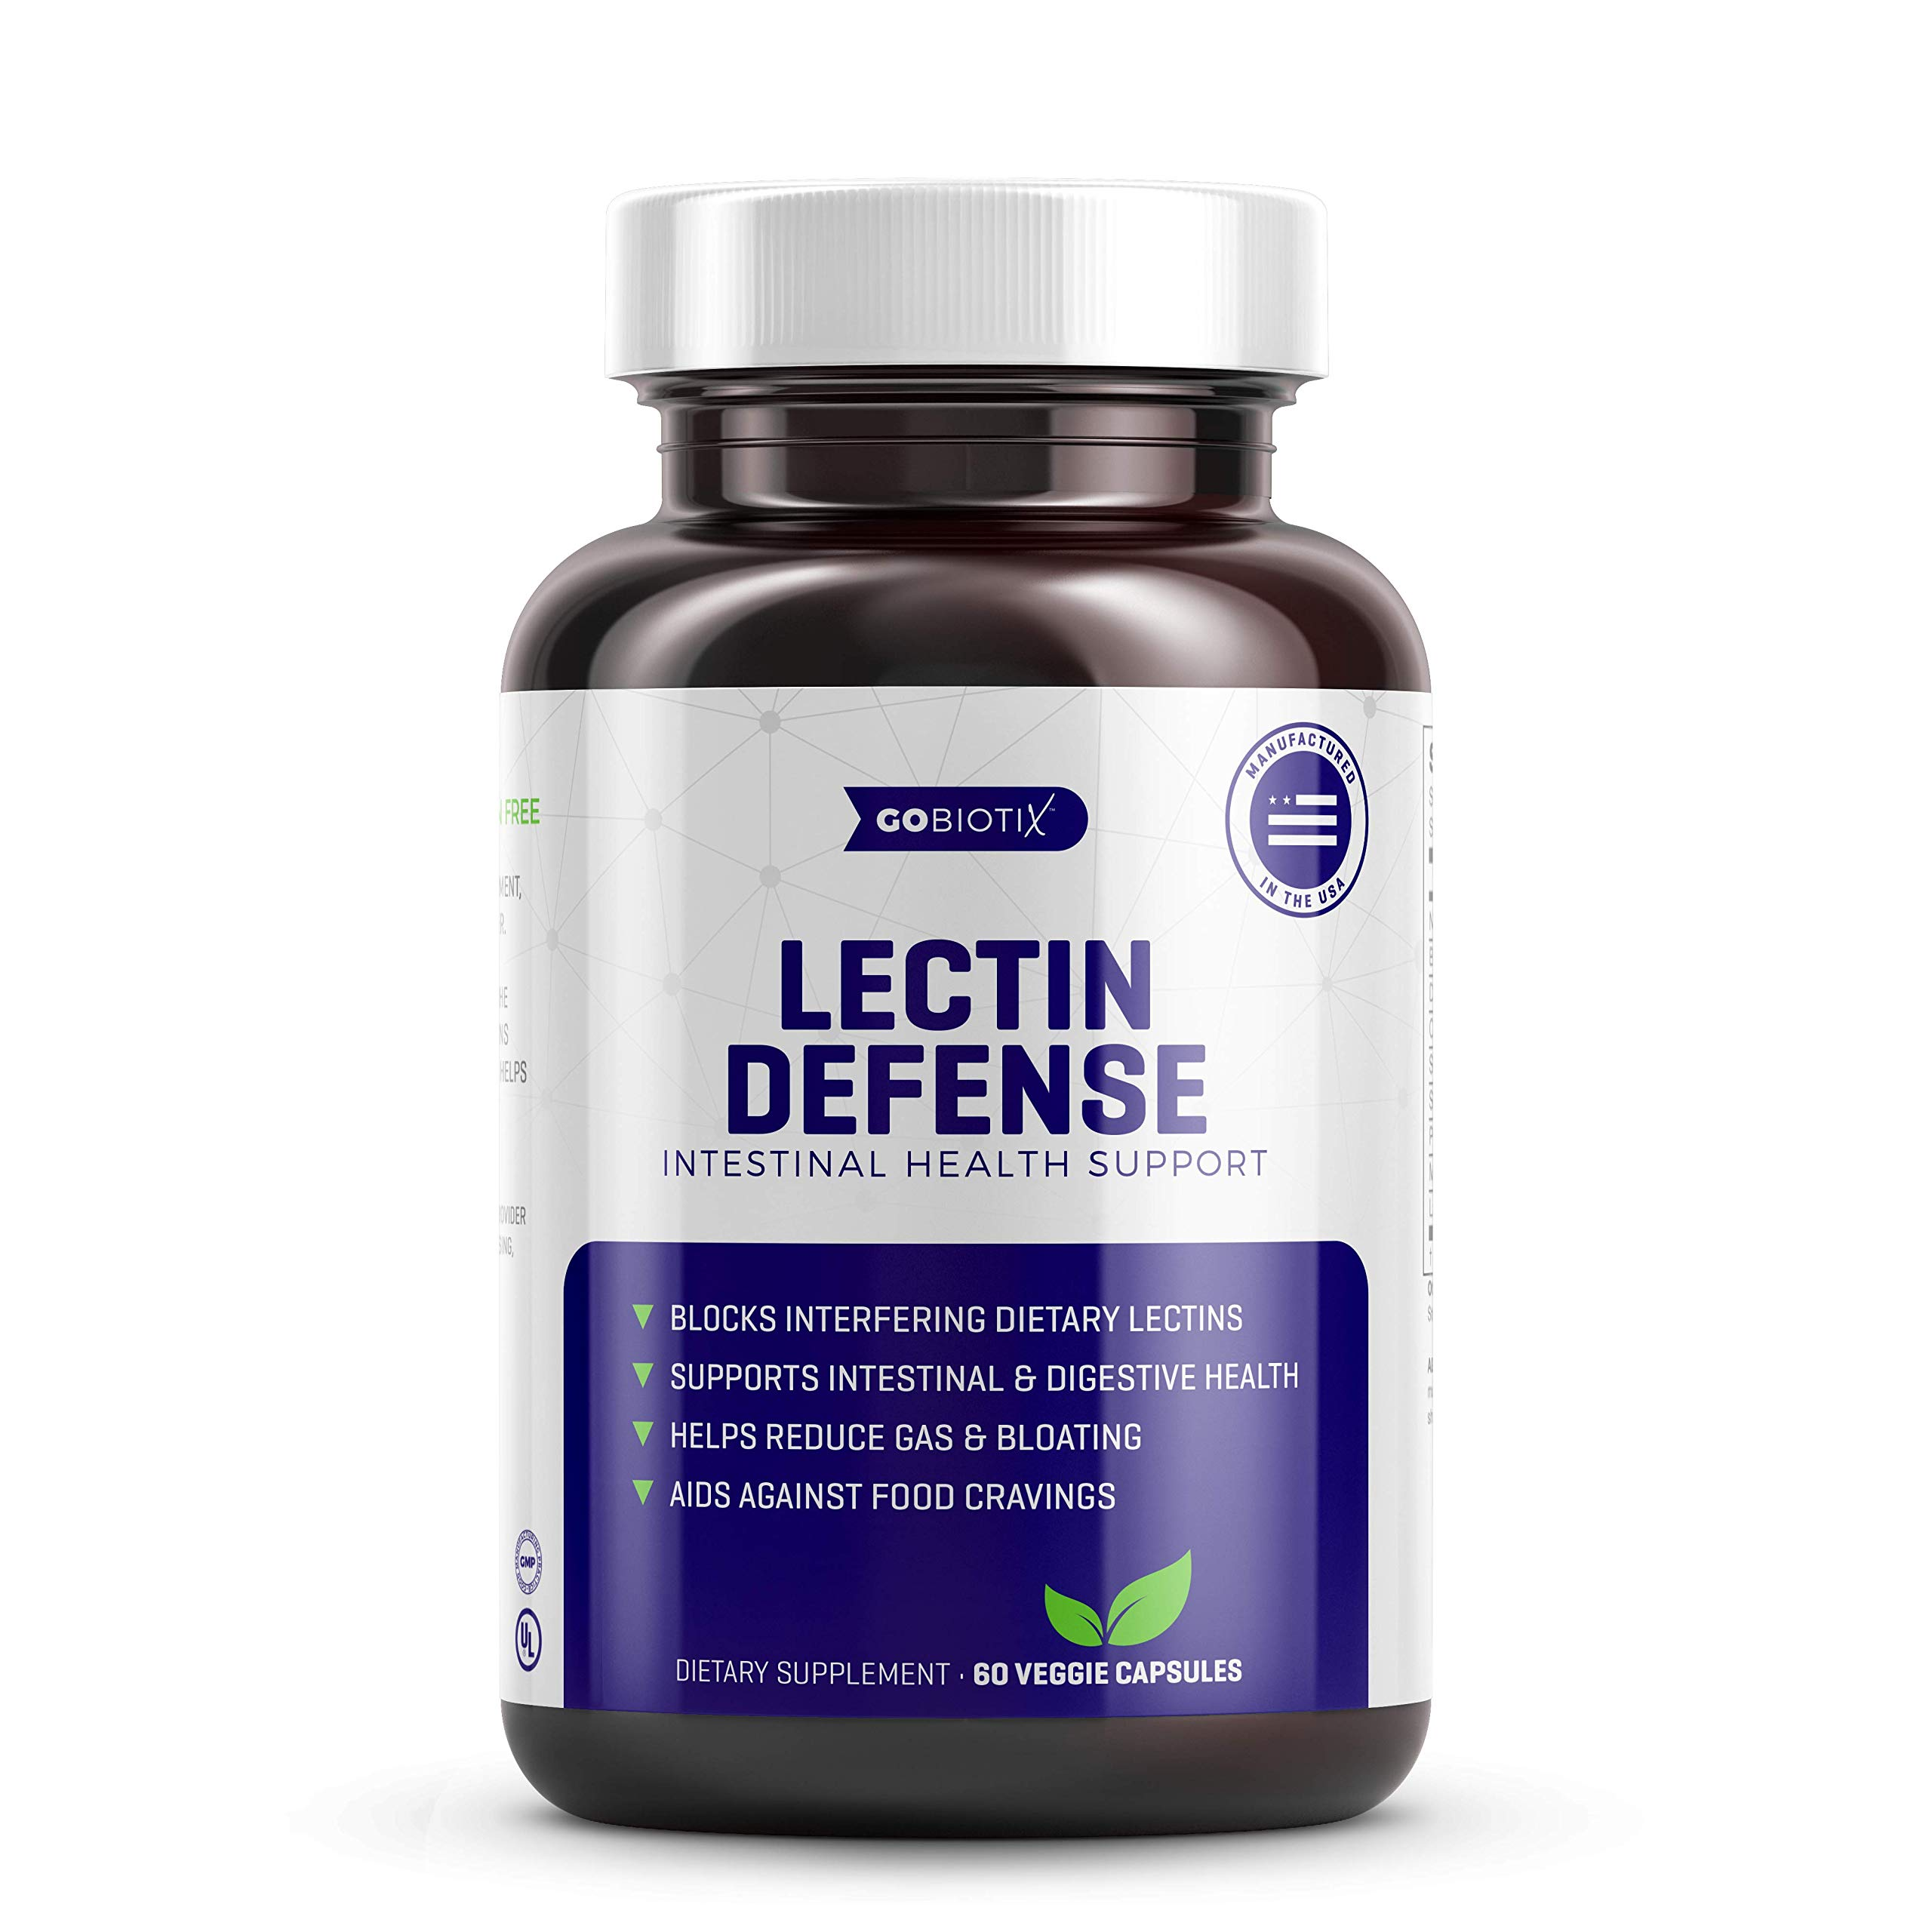 GoBiotix Lectin Defense - Blocks Interfering Dietary Lectins, Supports Intestinal & Digestive Health, Helps Reduce Gas, Aids Against Food Cravings - Non-GMO, Gluten Free - 60 Vegan Capsules by GoBiotix